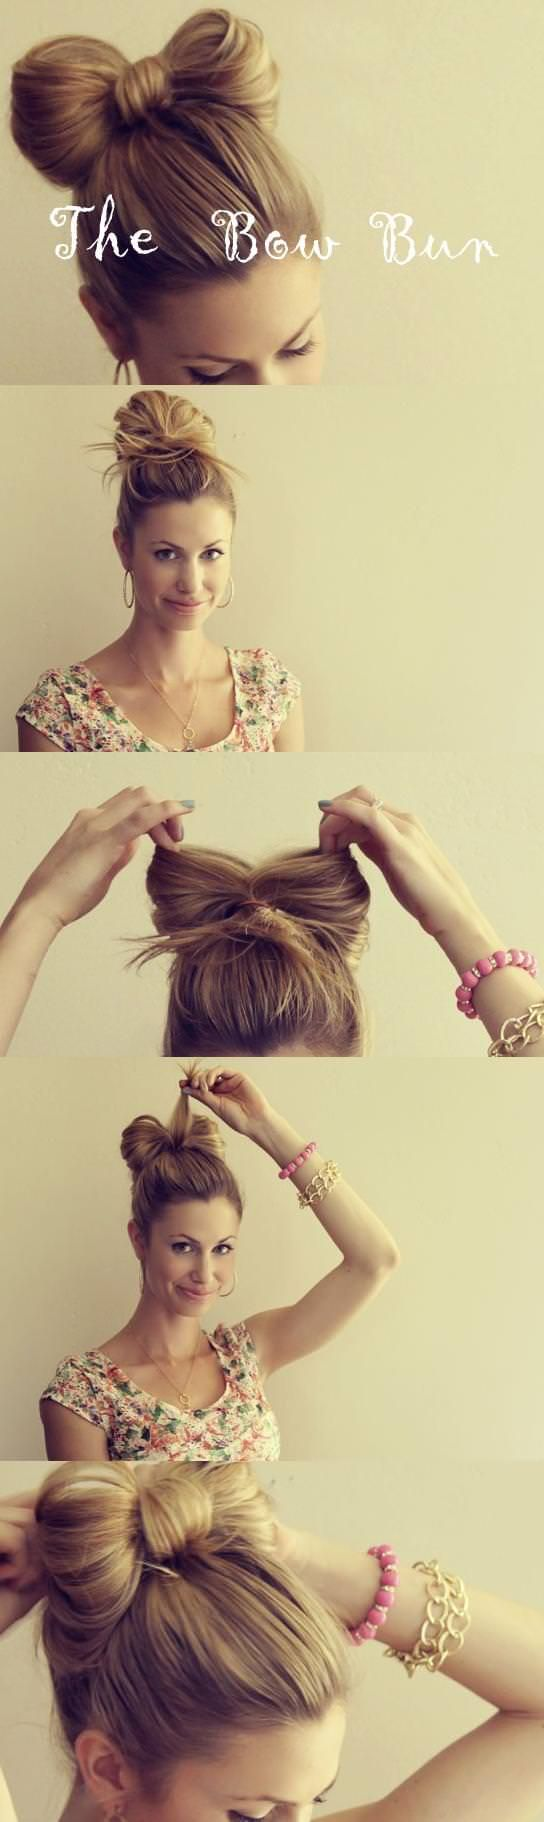 The best images about beautiful hair on pinterest fall